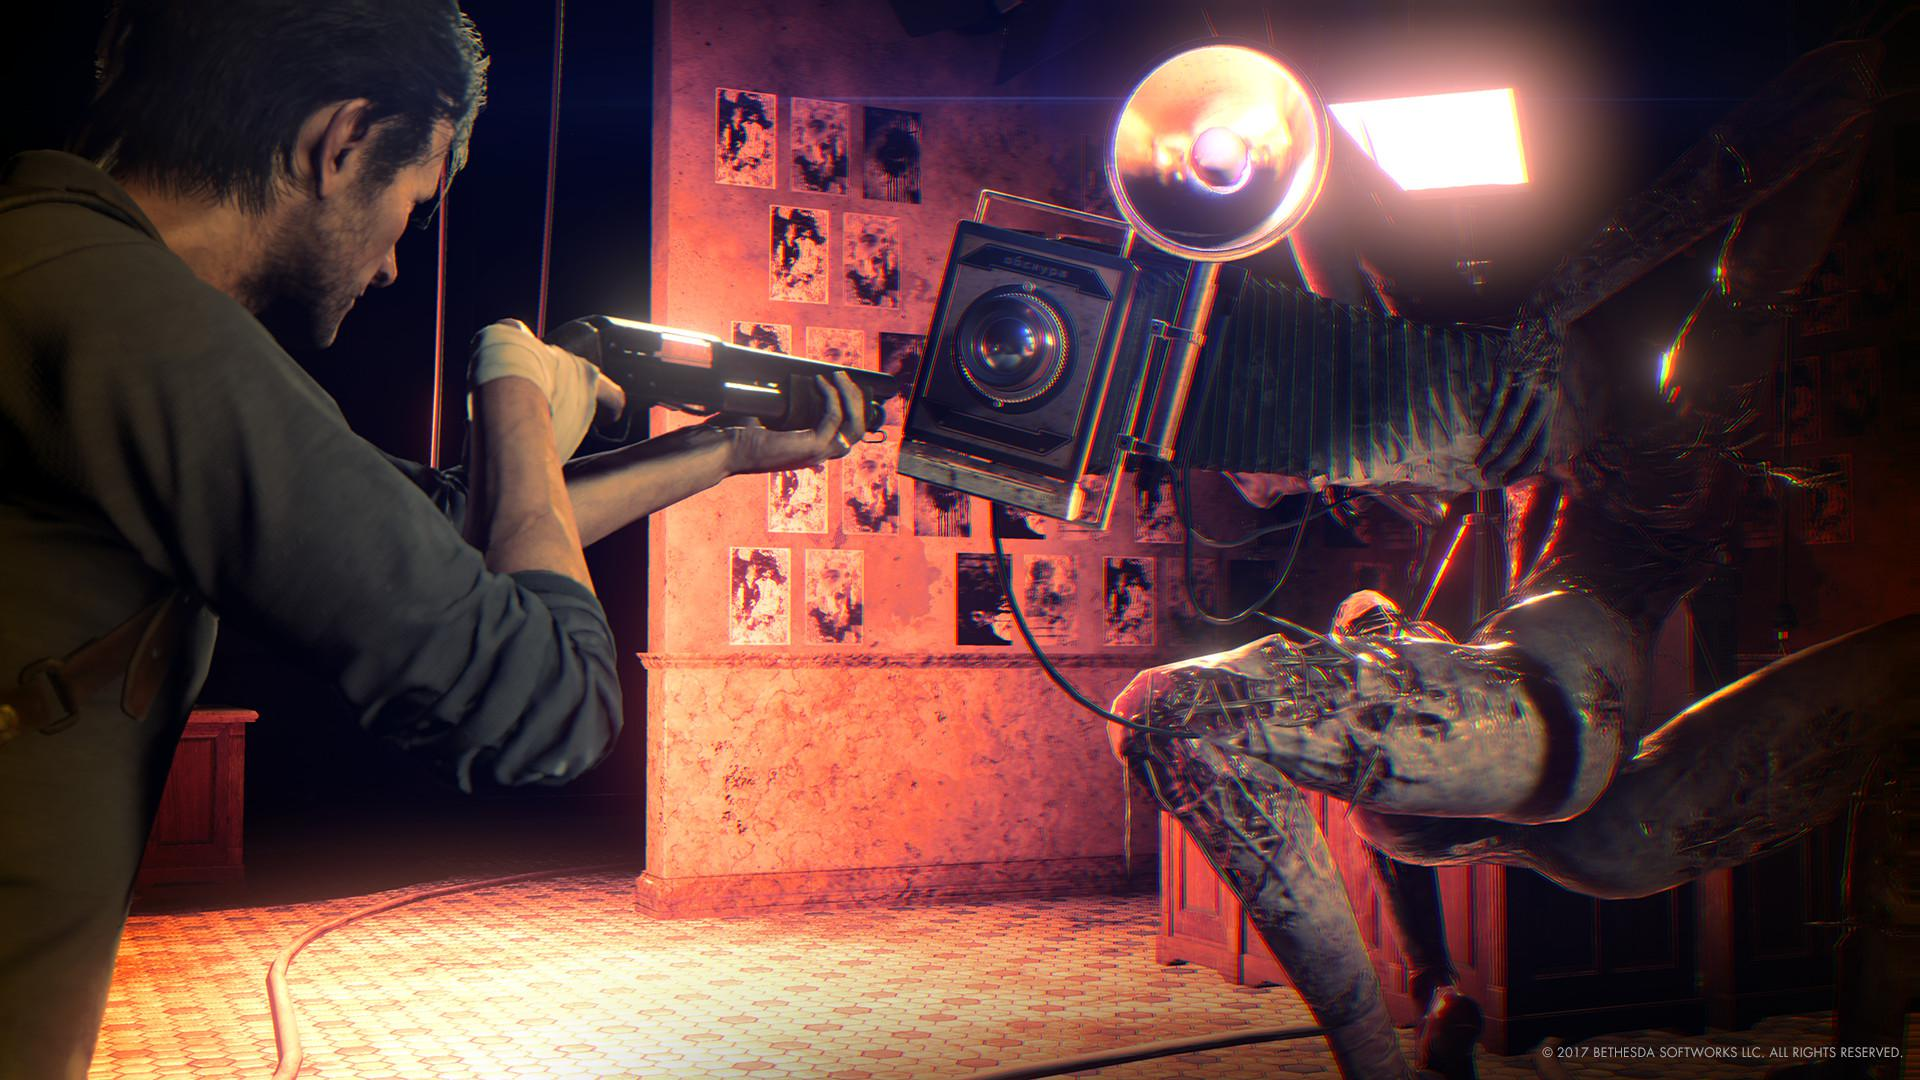 The Evil Within 2 will be one of the goriest games of the year... be warned!